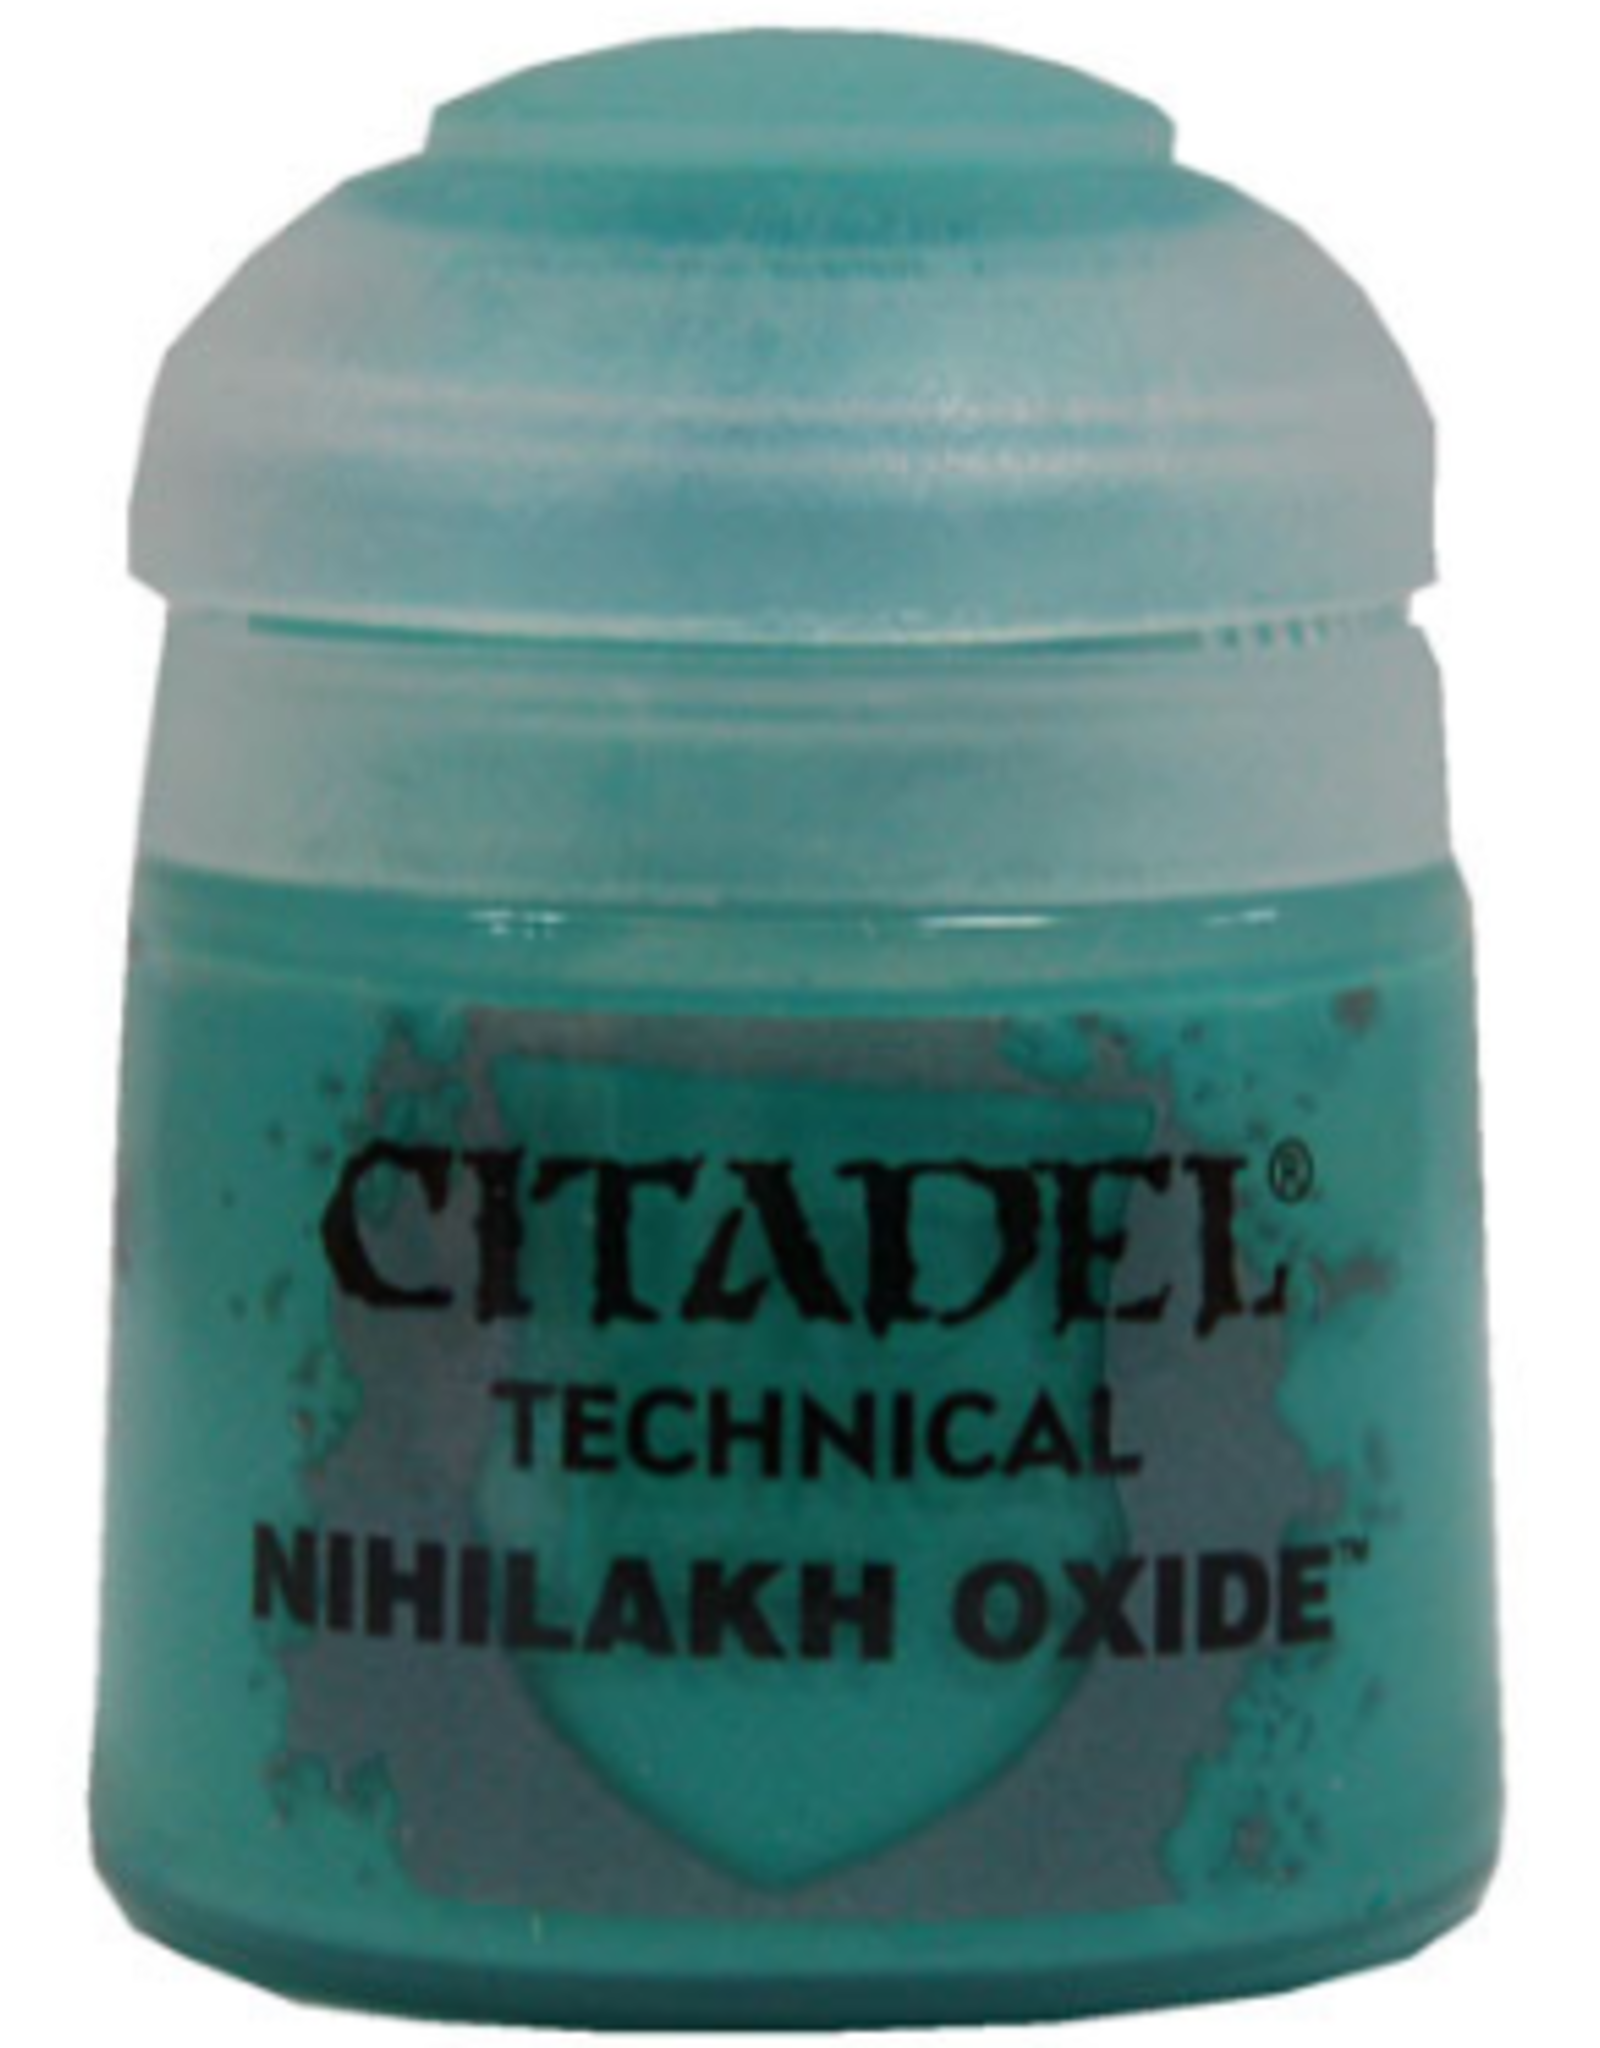 Games Workshop Citadel Technical Nihilakh Oxide